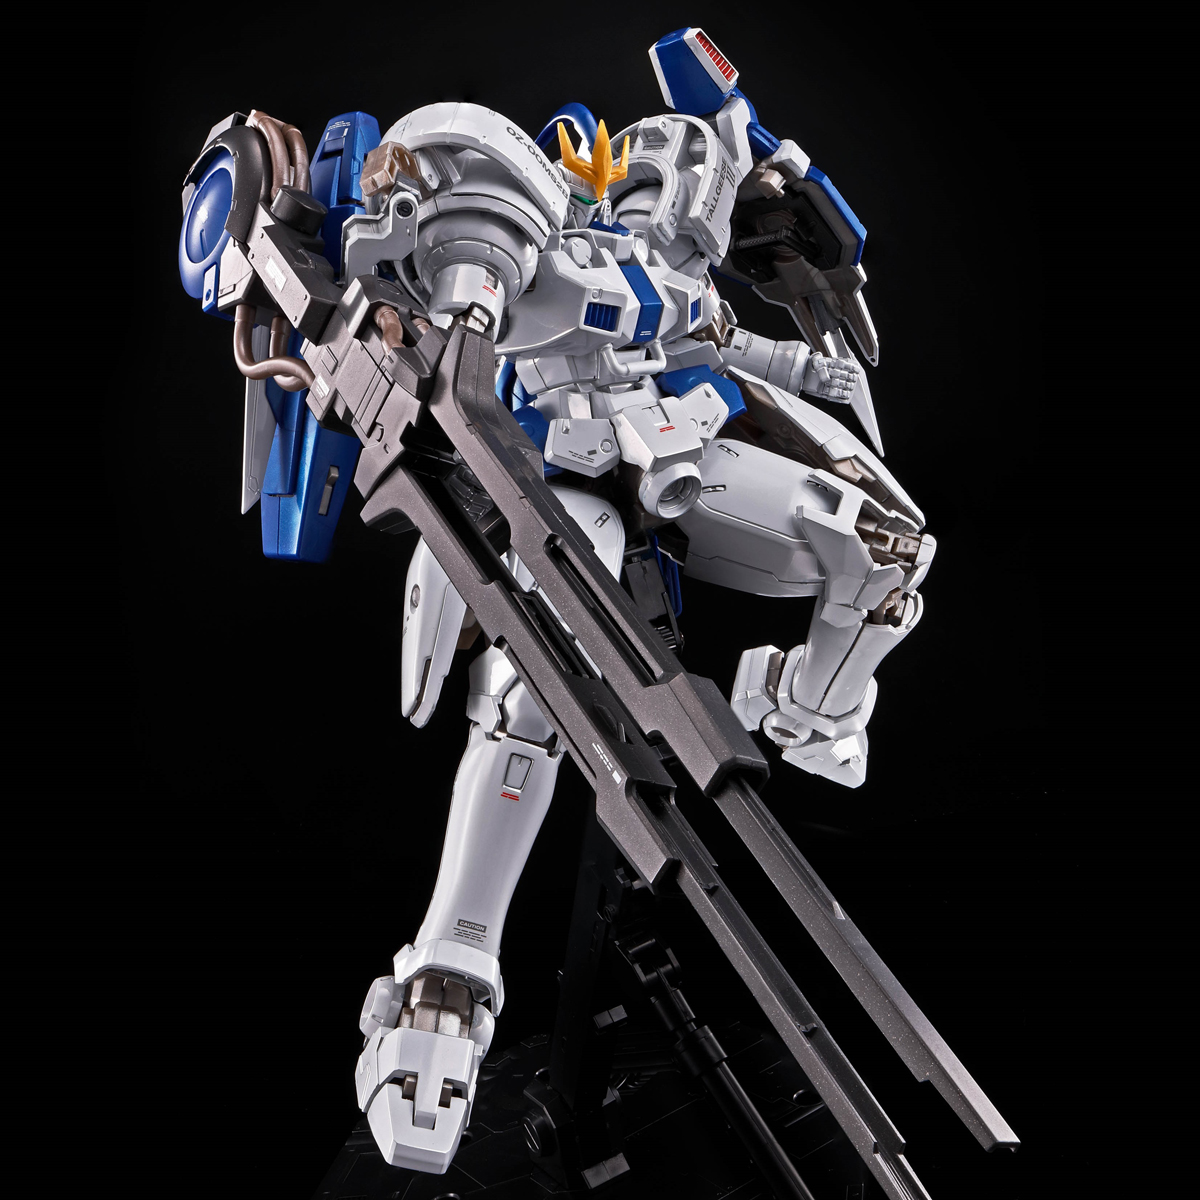 MG 1/100 TALLGEESE Ⅲ [SPECIAL COATING][Sep 2020 Delivery]